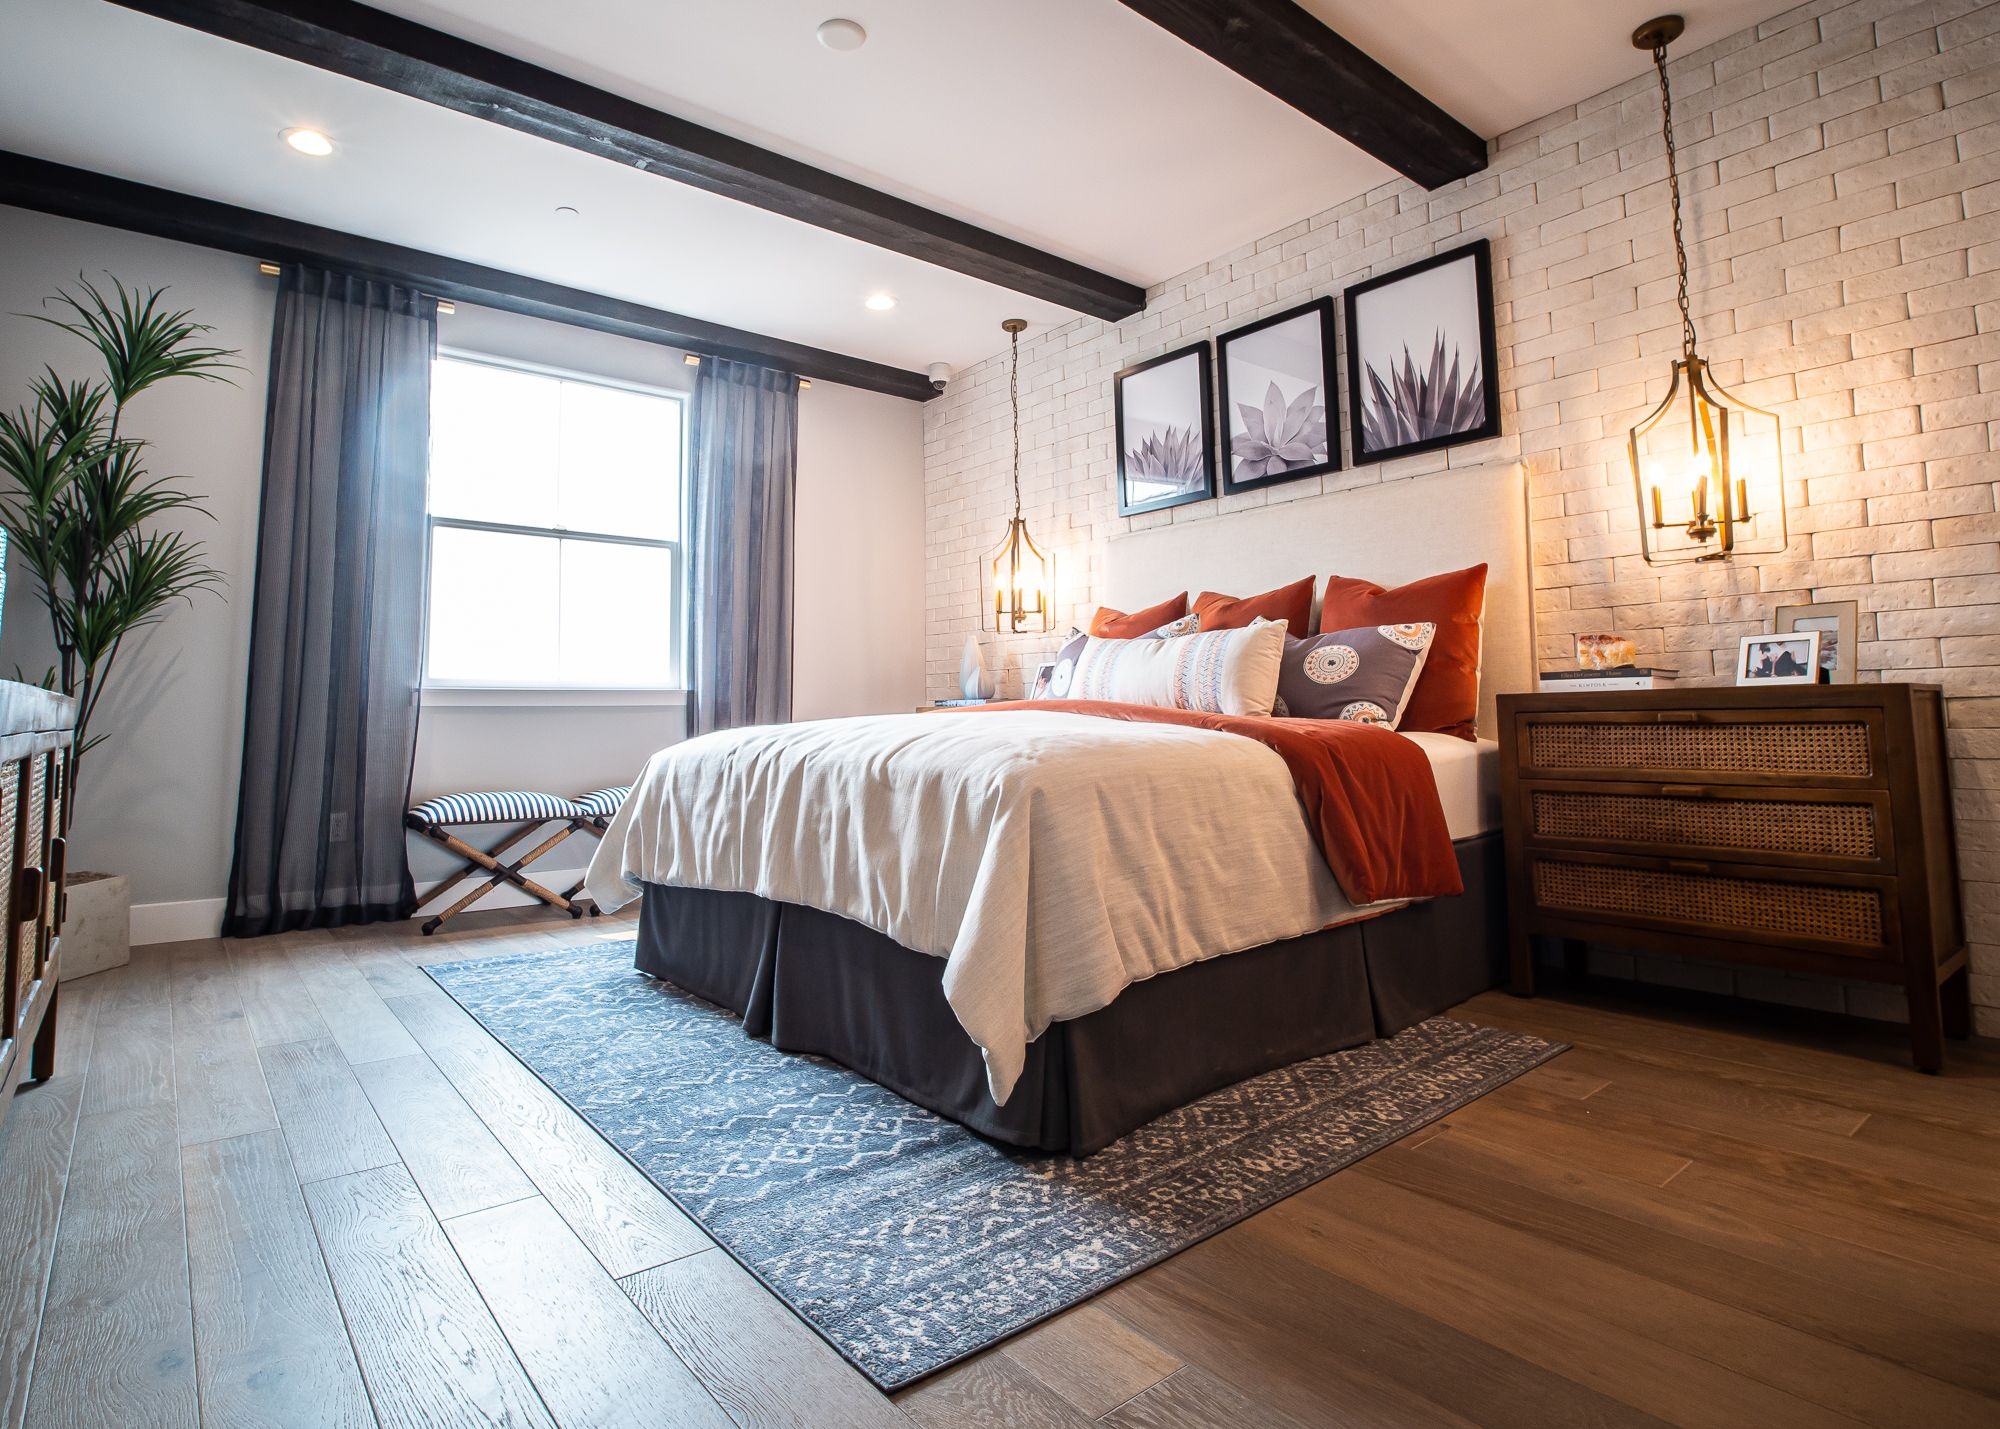 Bedroom featured in the Village Courts Collection Residence 9 By BlackPine Communites